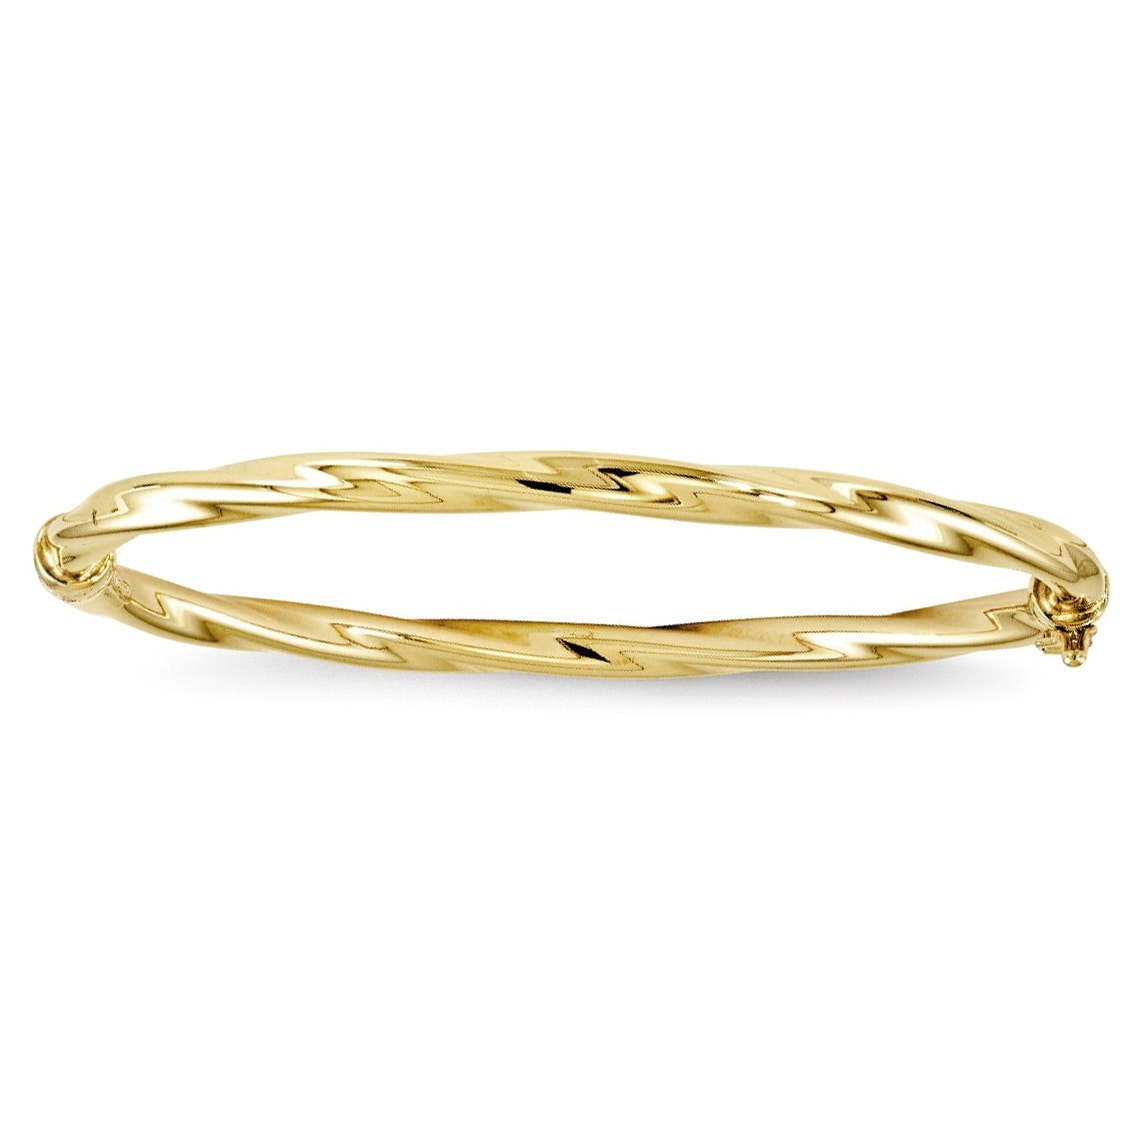 bracelets overstock gold watches shipping bangles karat product bangle com jewelry today polished free